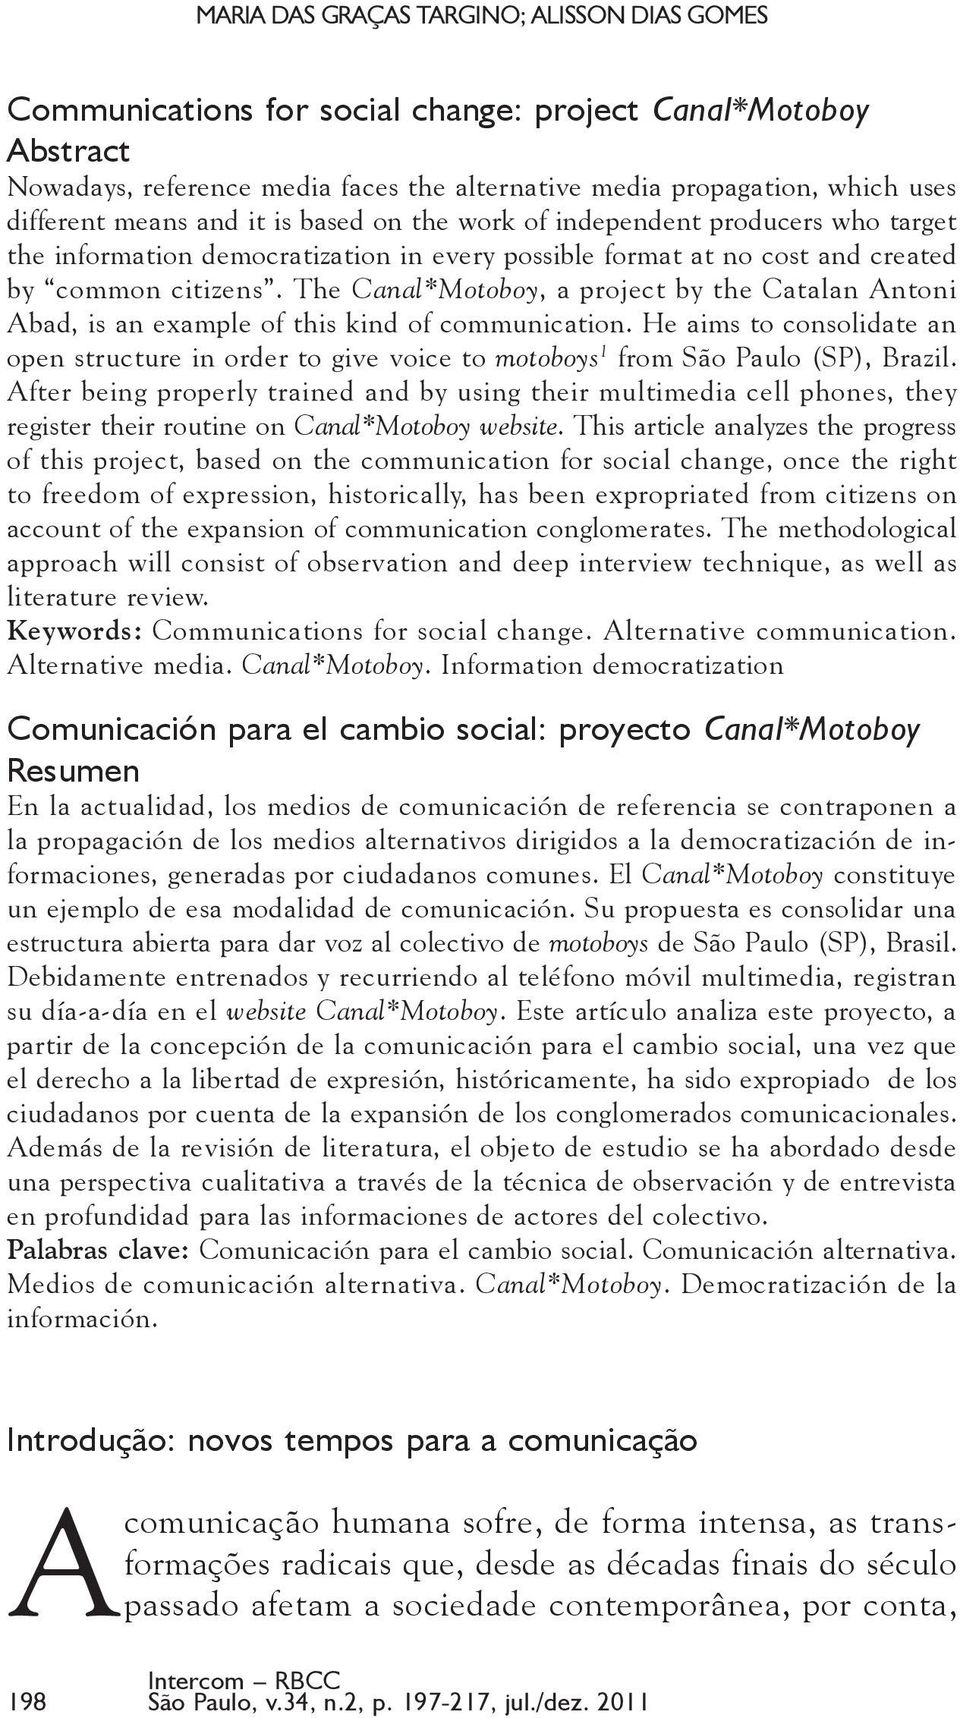 The Canal*Motoboy, a project by the Catalan Antoni Abad, is an example of this kind of communication.